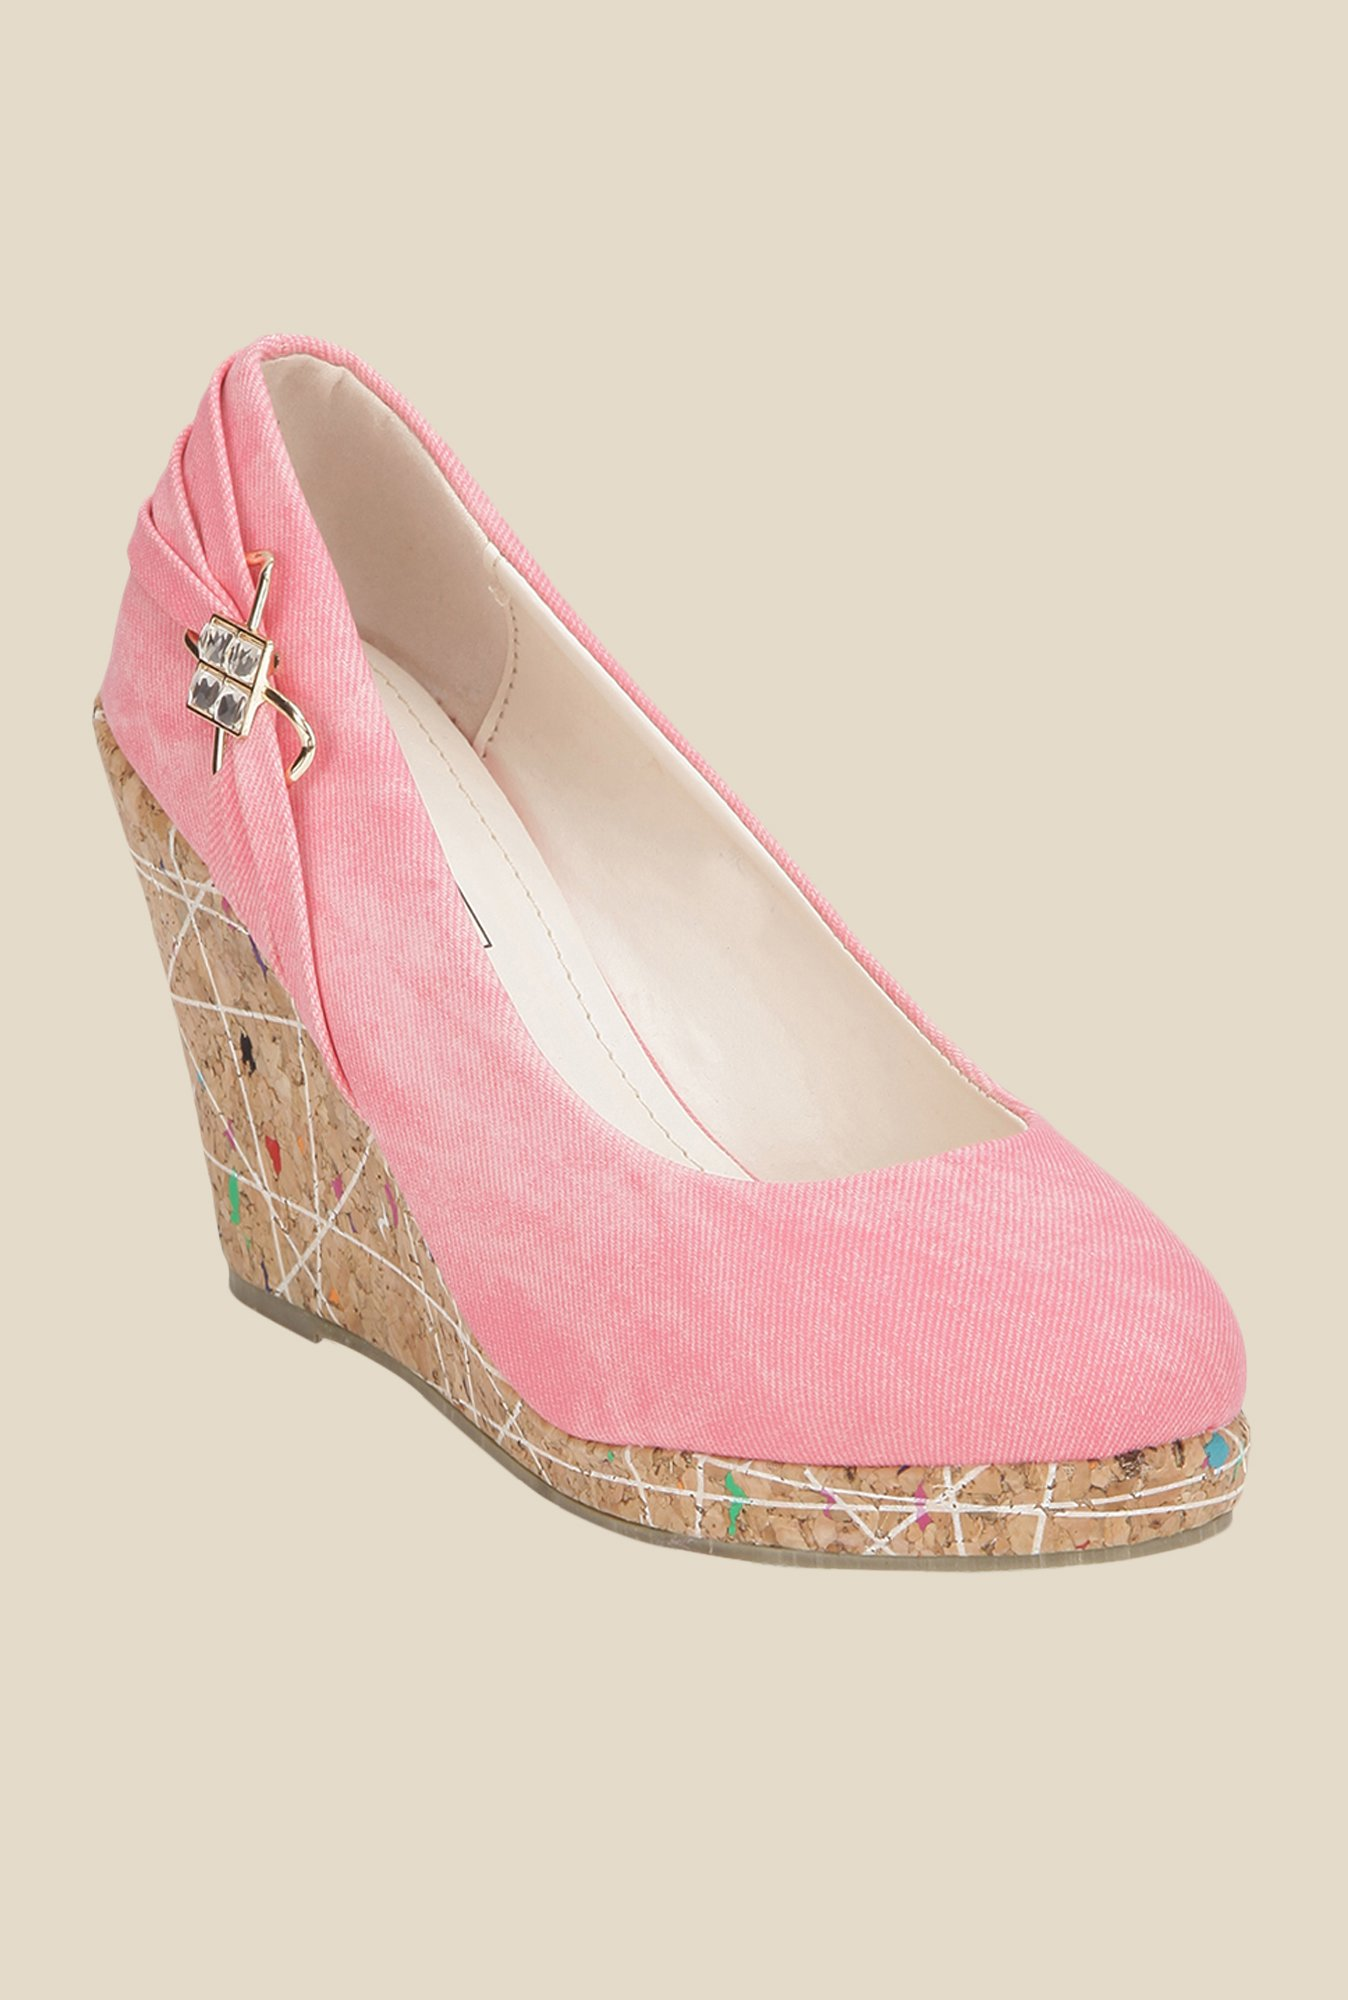 Yepme Pink & Brown Wedge Heeled Pumps